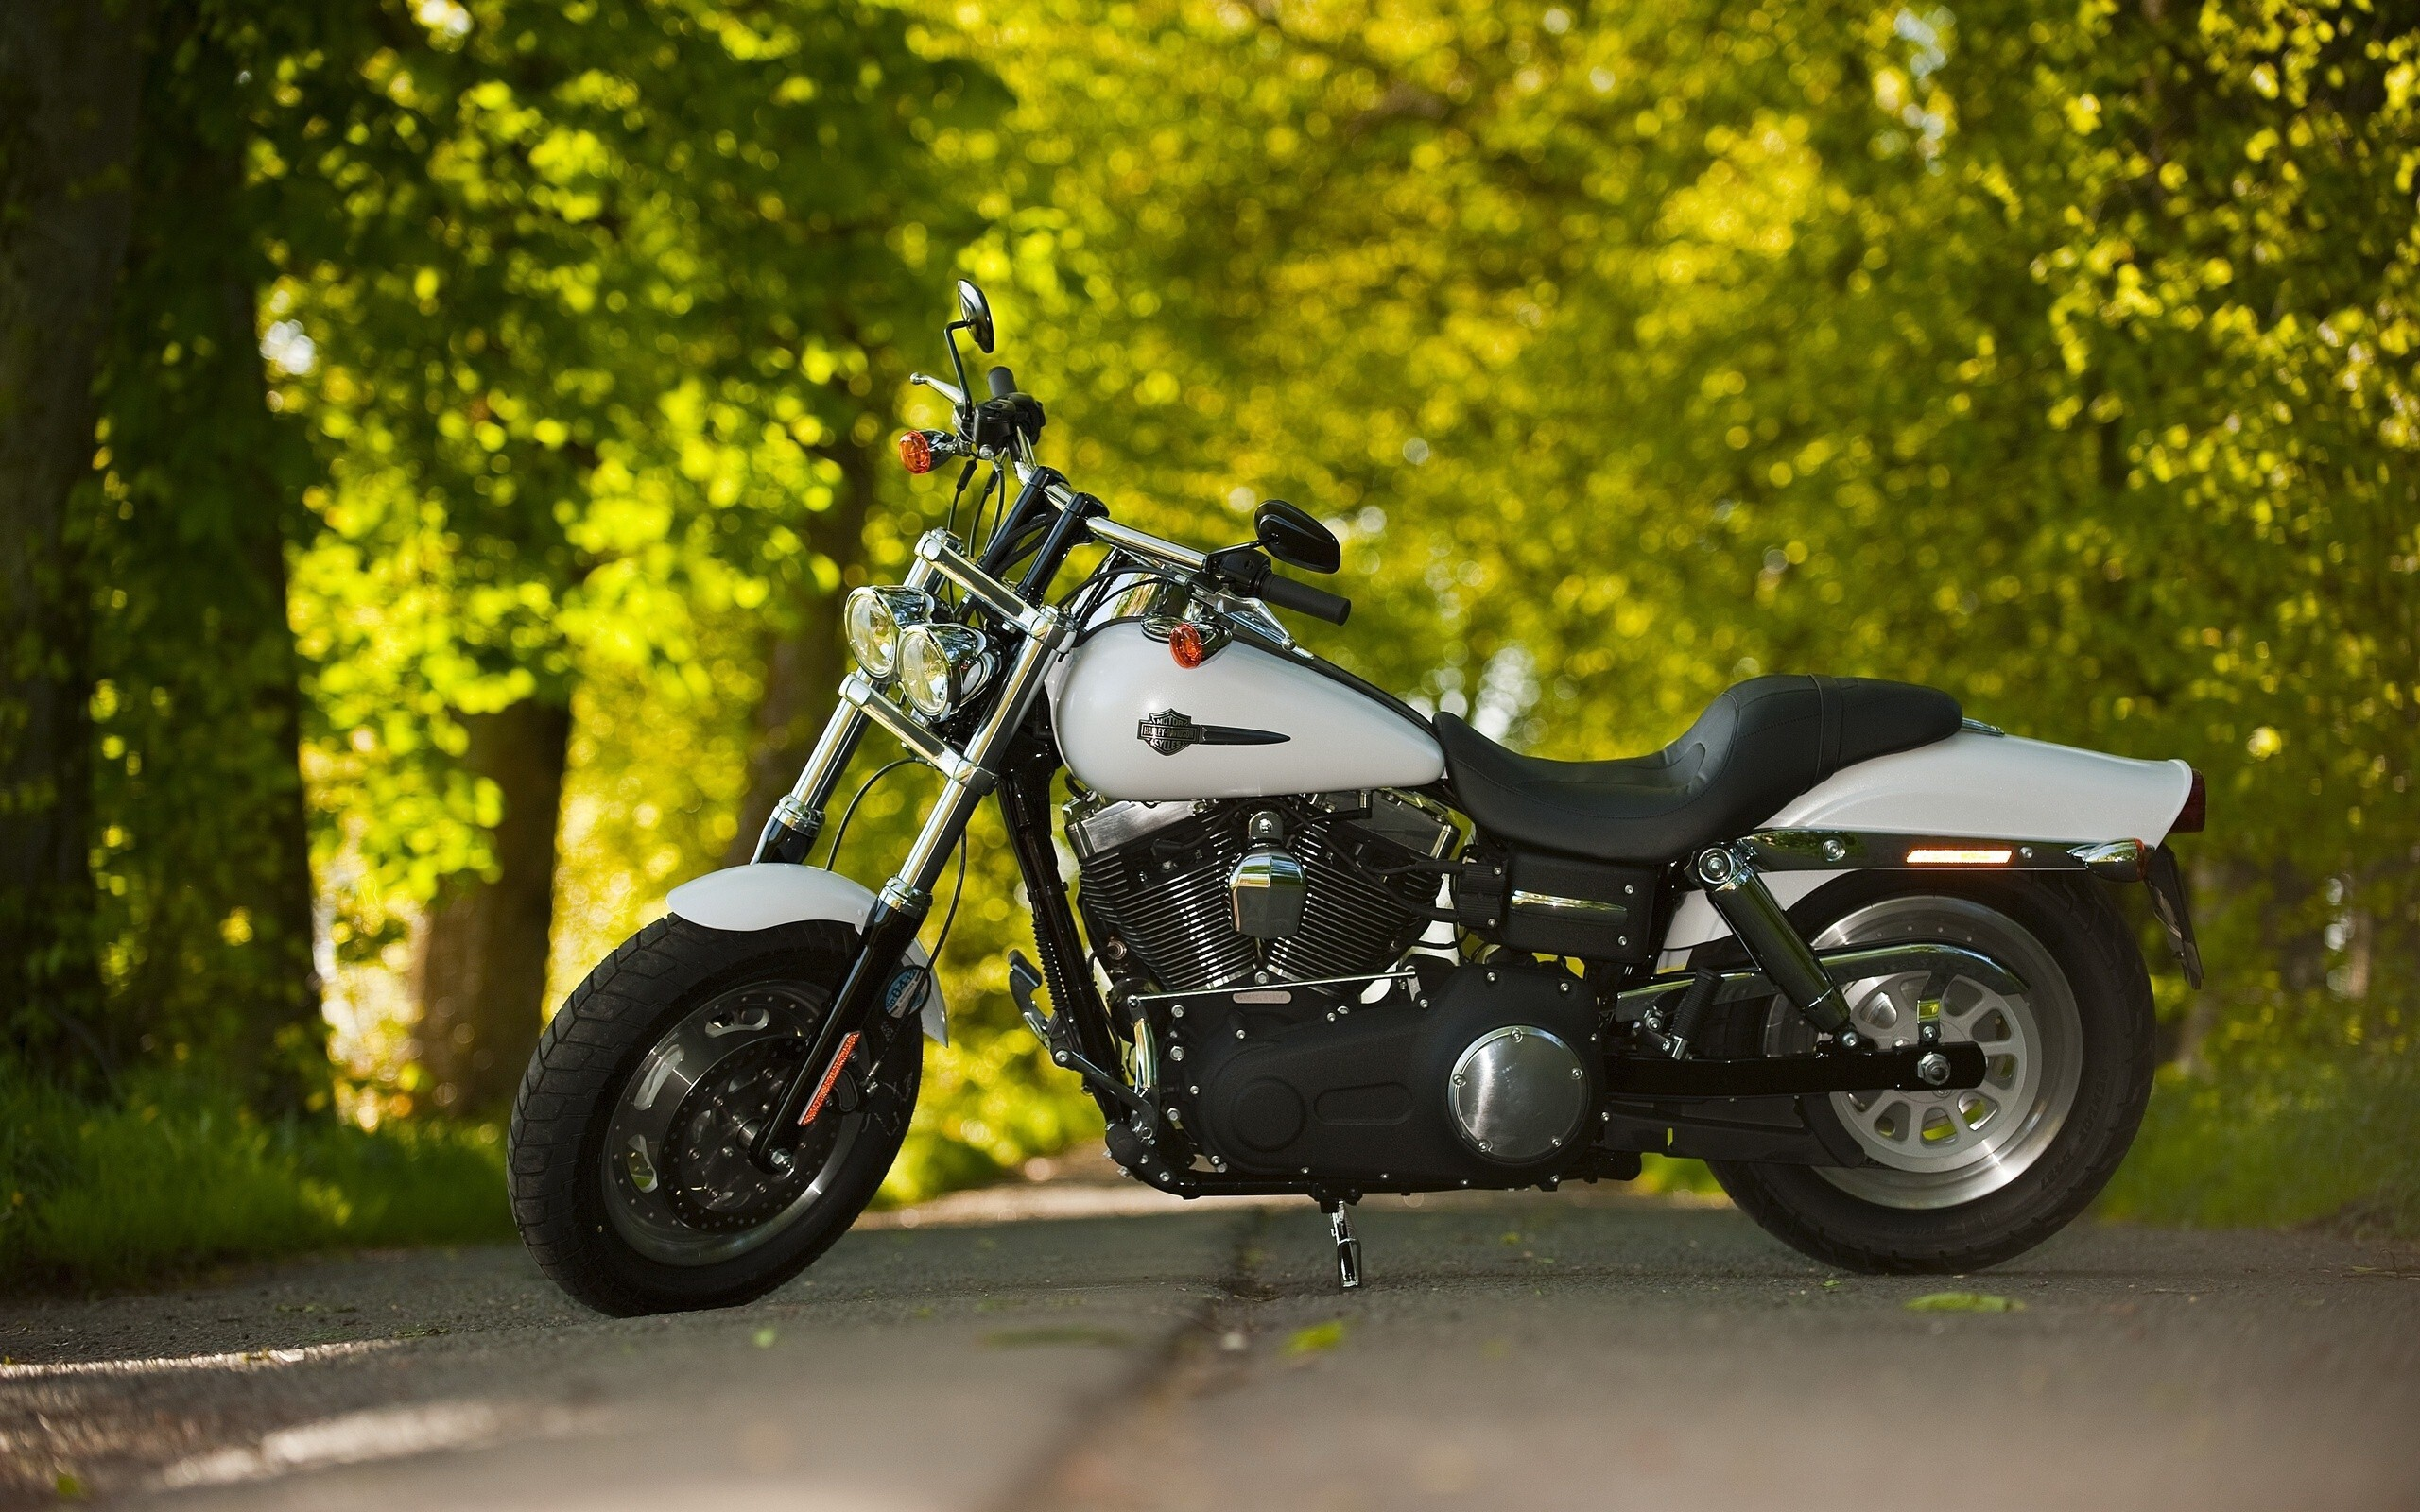 Hd Car Wallpapers Free Download Zip Black And White Harley Davidson Bike On Road Hd Wallpapers